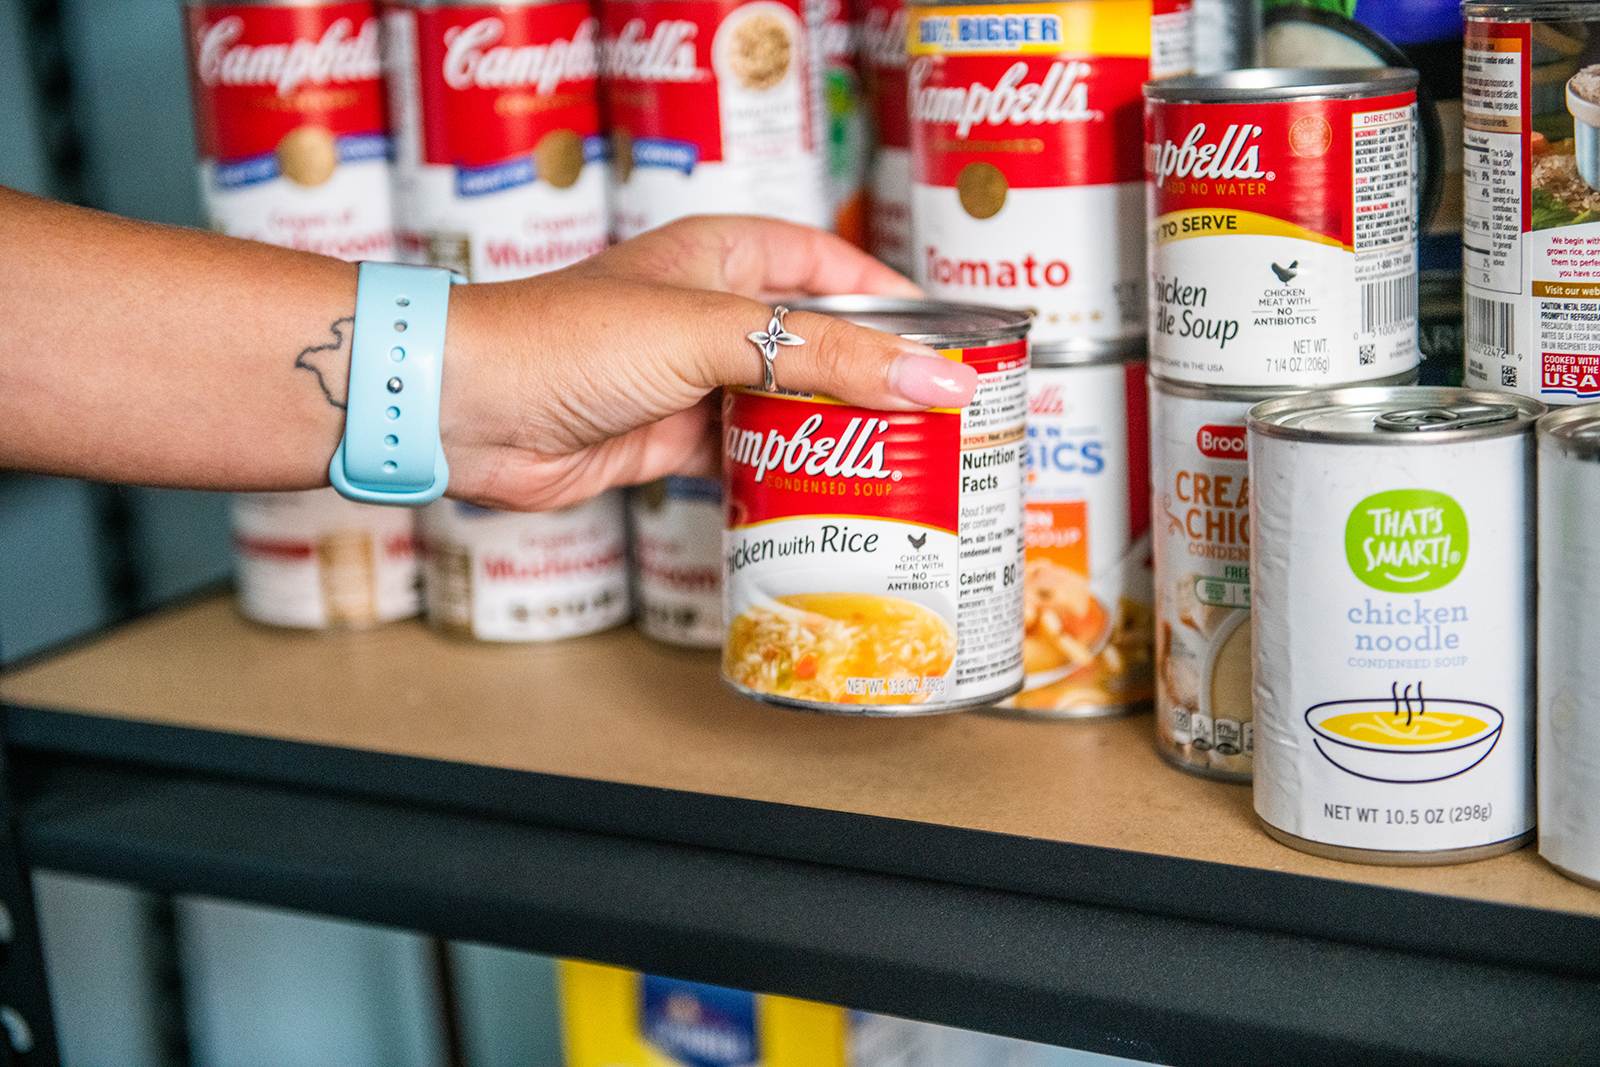 An individual grabbing a can of food from a shelf.